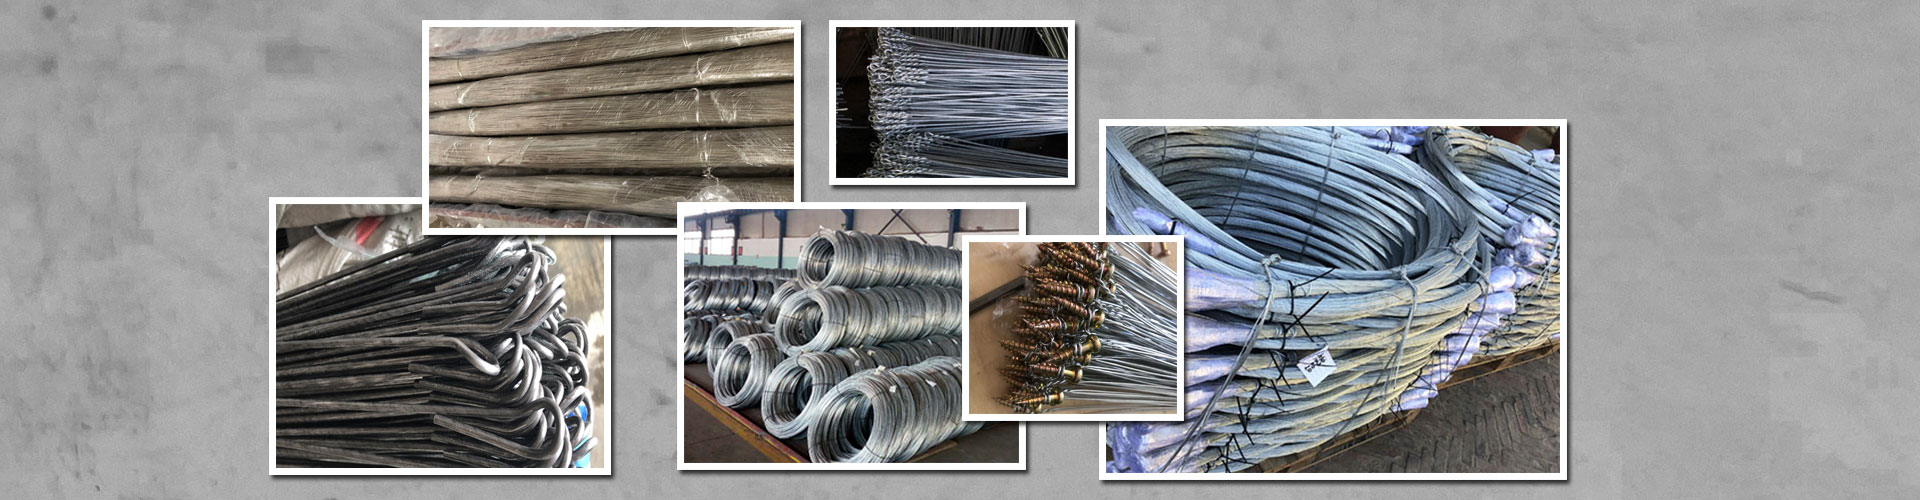 Baling Wire,Wedge Wire Screen,Filter Mesh